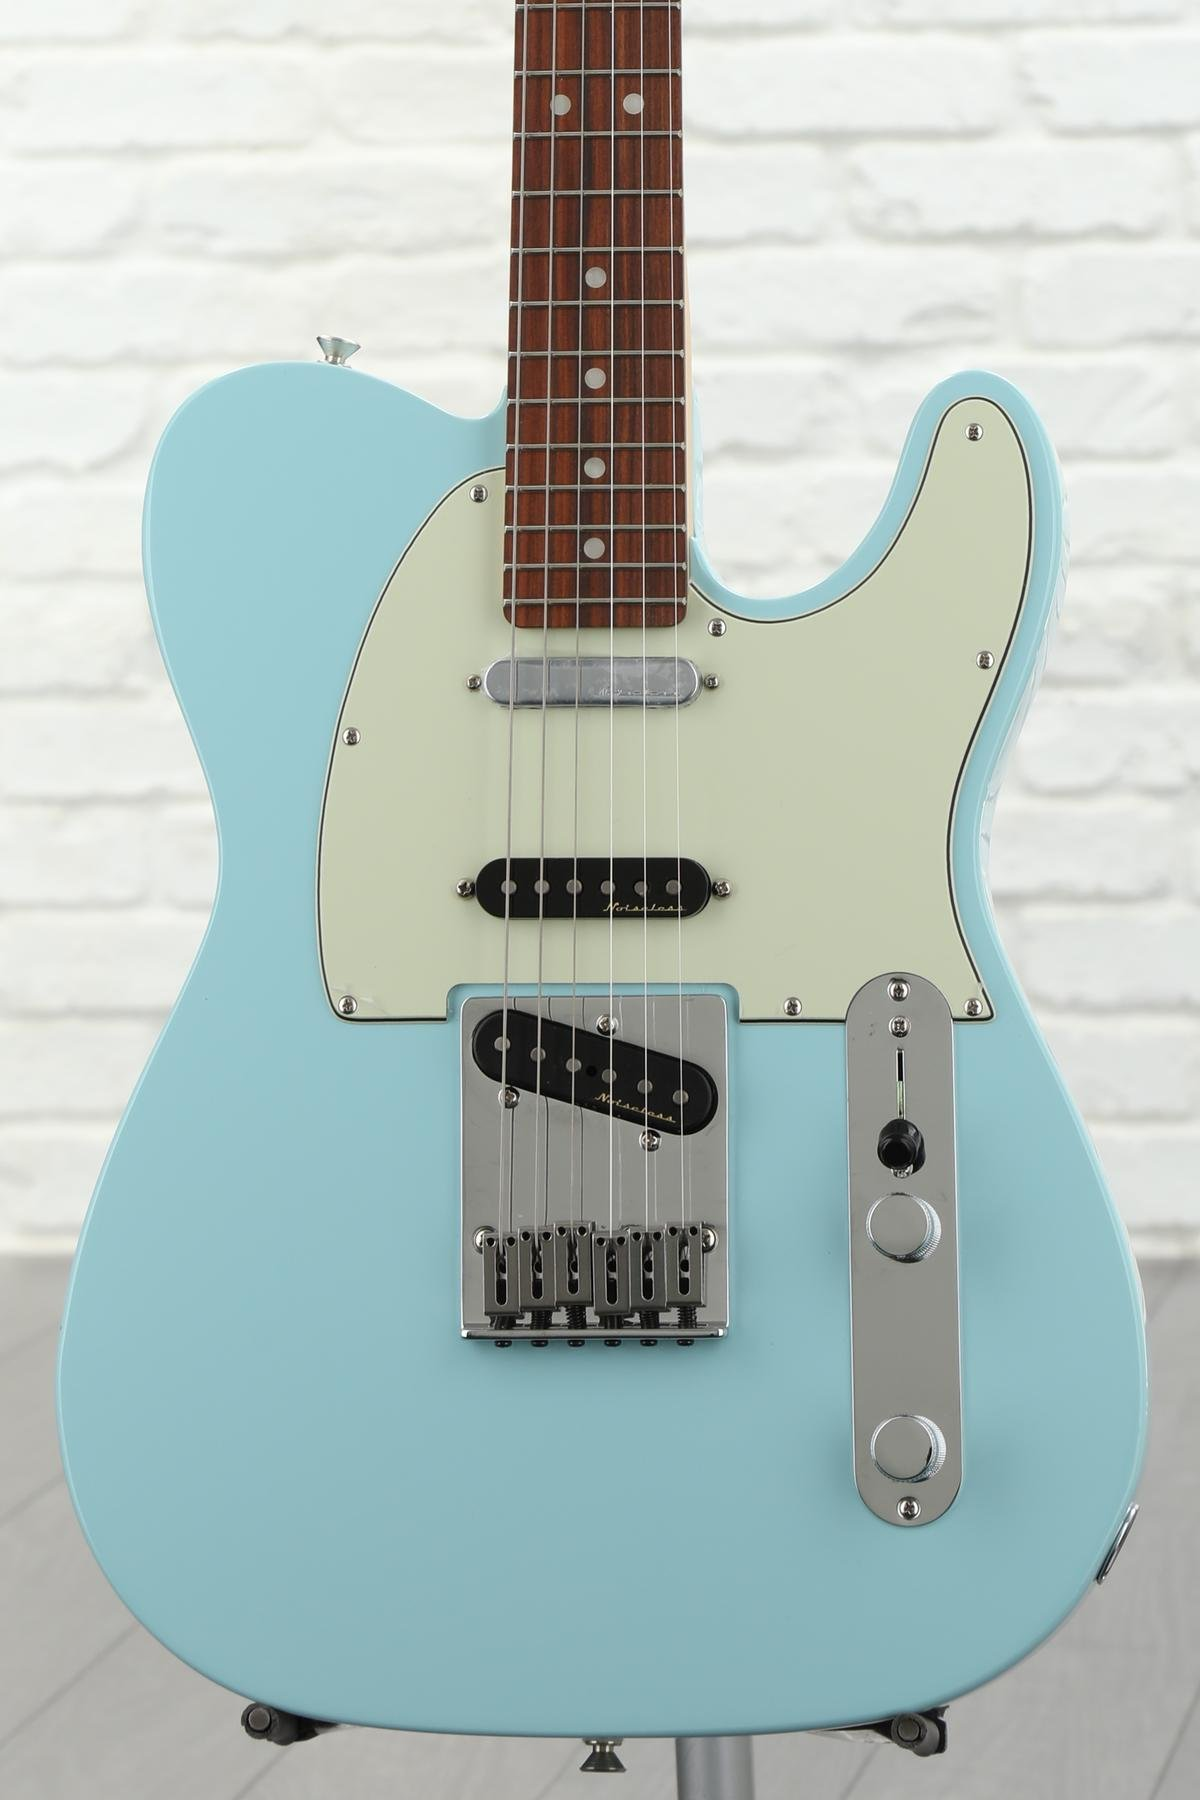 Fantastic How To Install Bulldog Remote Start Thin 3 Coil Pickup Round 2 Humbucker 5 Way Switch 5 Way Pickup Switch Old 5 Way Switch 2 Humbuckers RedSolar Panel Schematic Fender Deluxe Nashville Tele   Daphne Blue With Pau Ferro ..